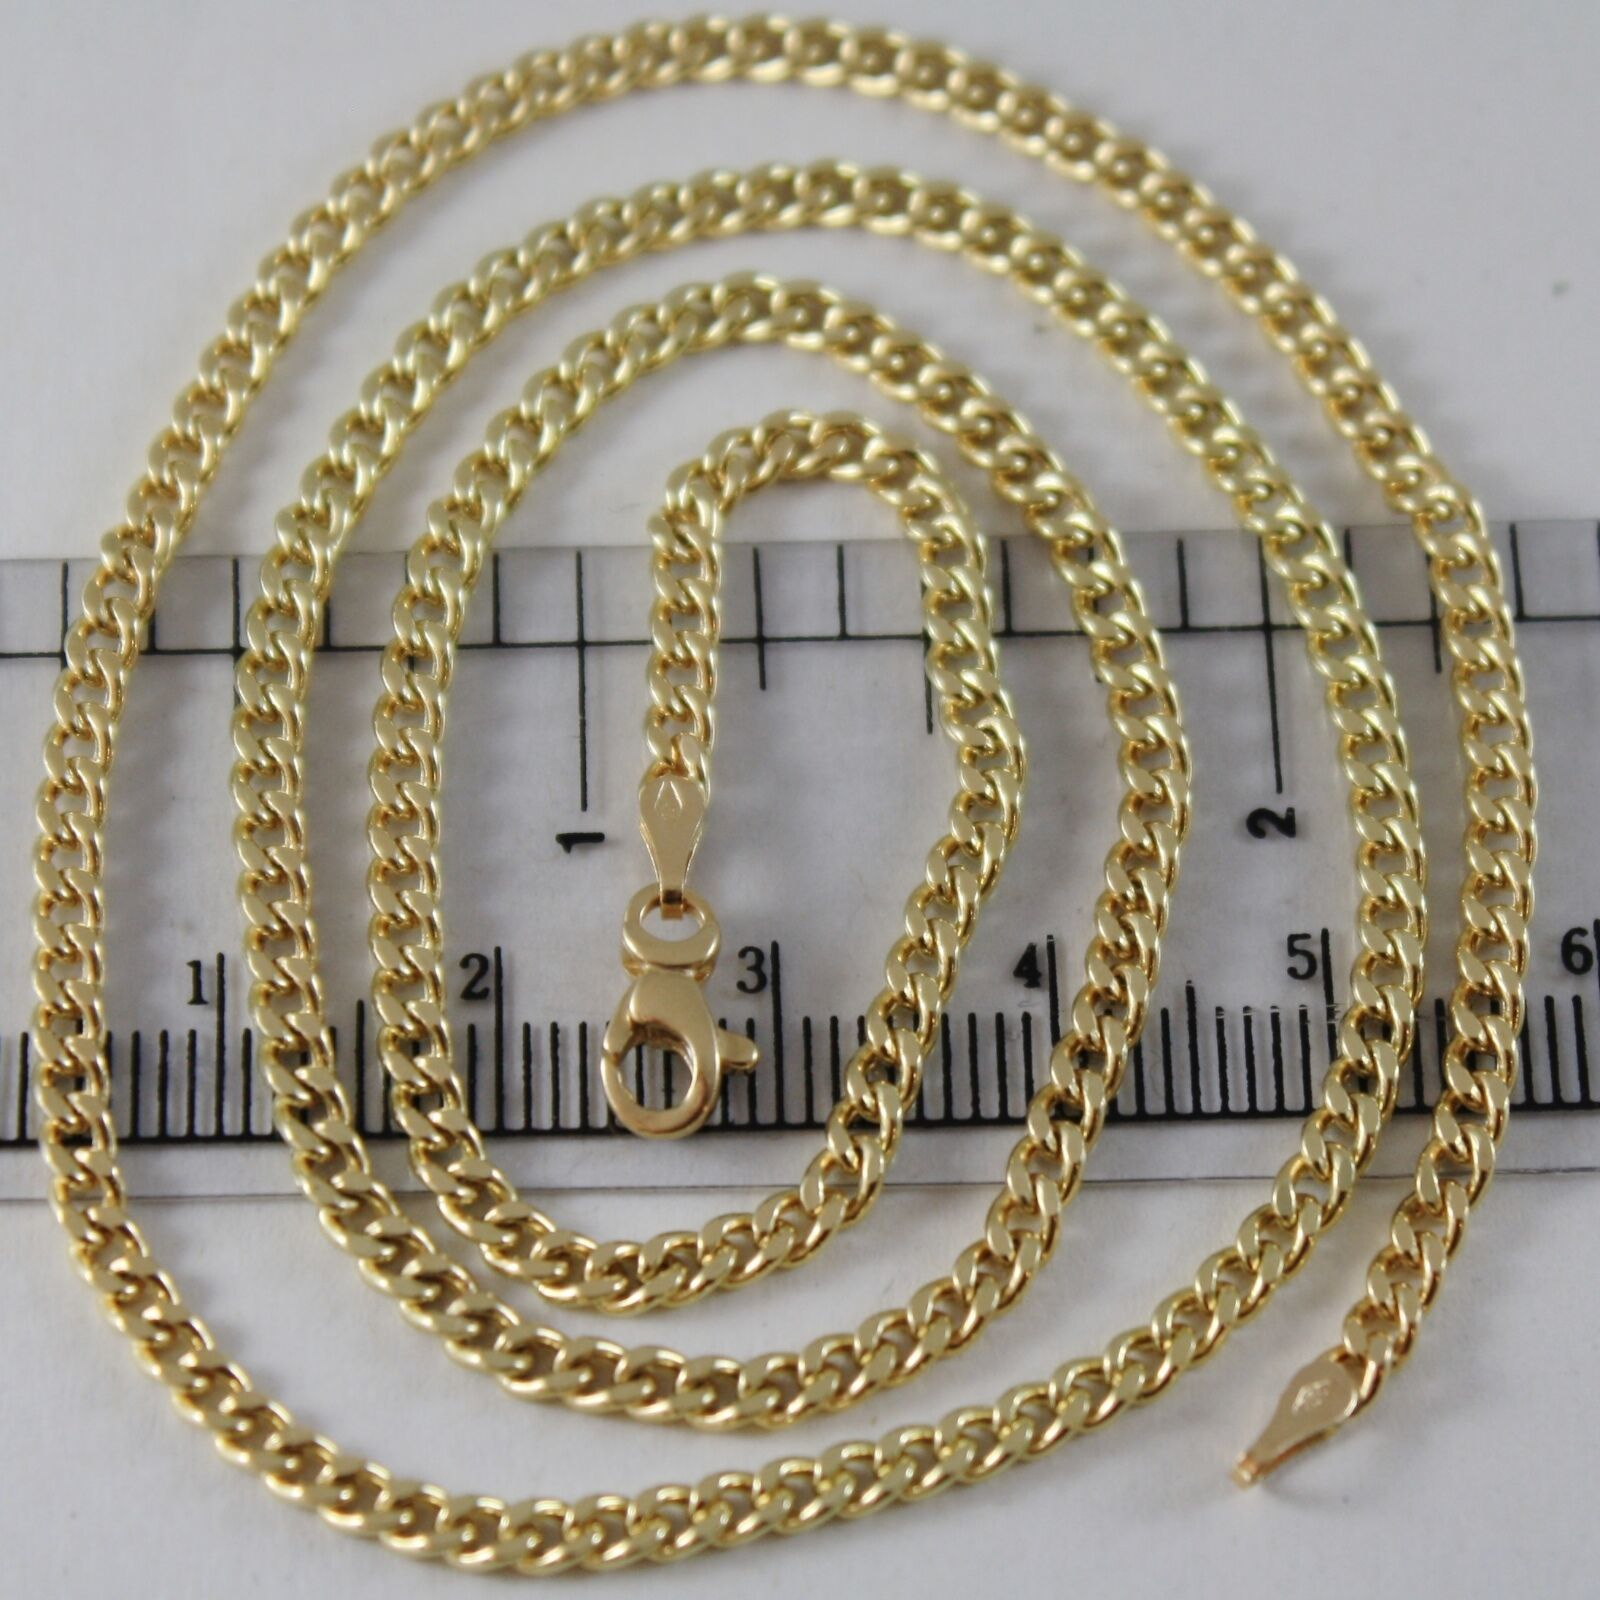 18K YELLOW GOLD CHAIN LITTLE GOURMETTE LINK 2.5 MM, 19.70 INCHES MADE IN ITALY